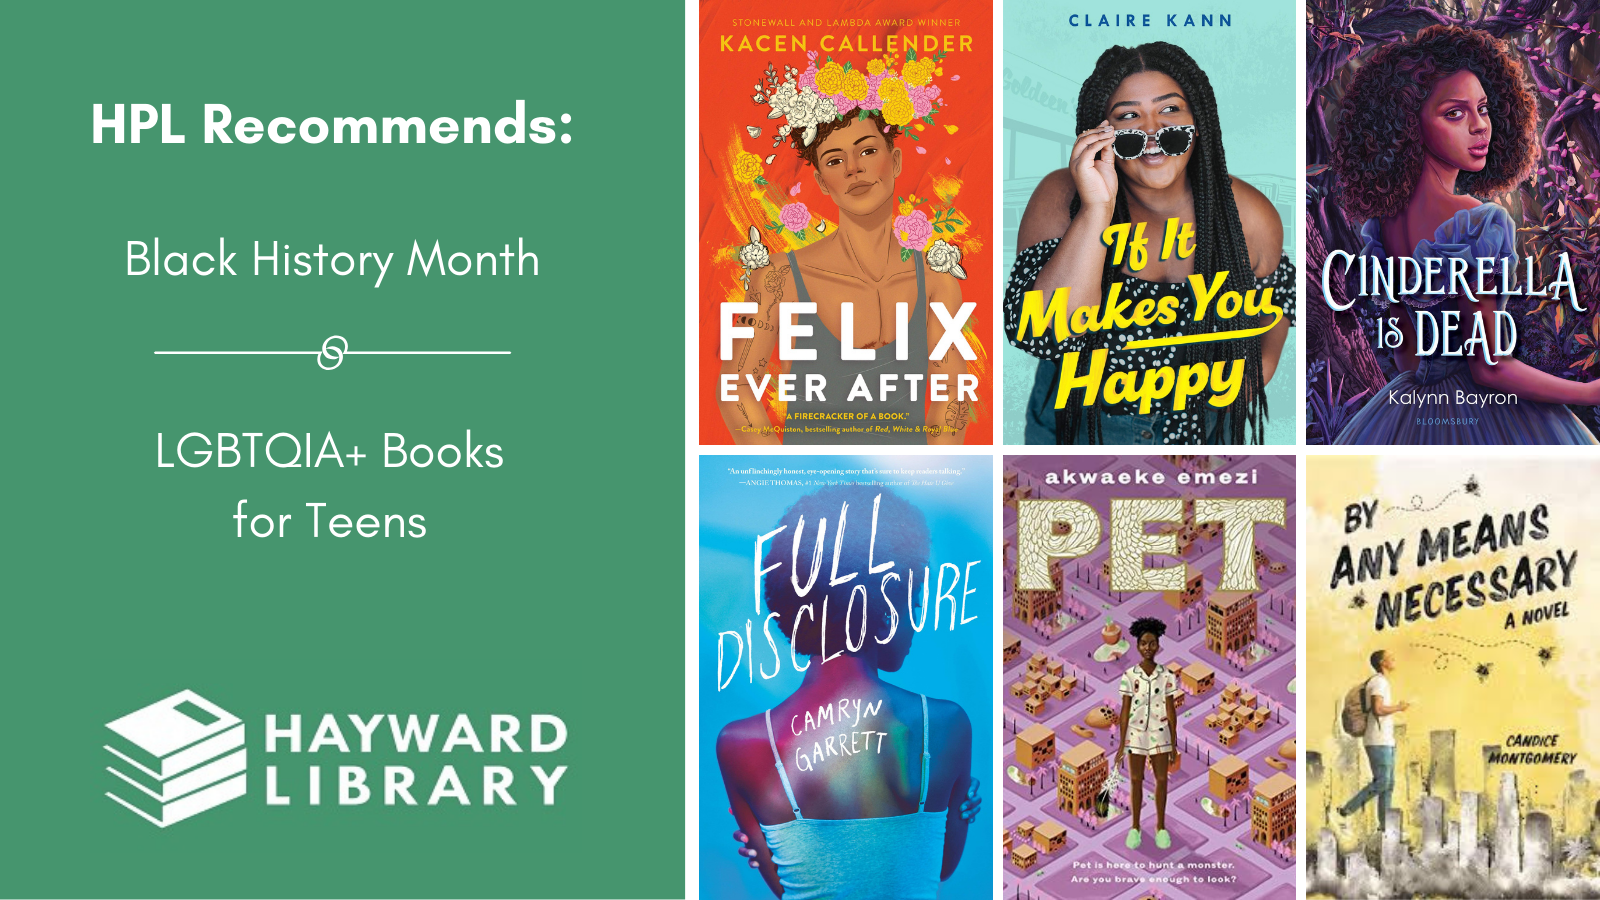 Collage of book covers with a green block on left side that says HPL Recommends, Black History Month, LGBTQIA+ Books for Teens in white text, with Hayward Library logo below it.